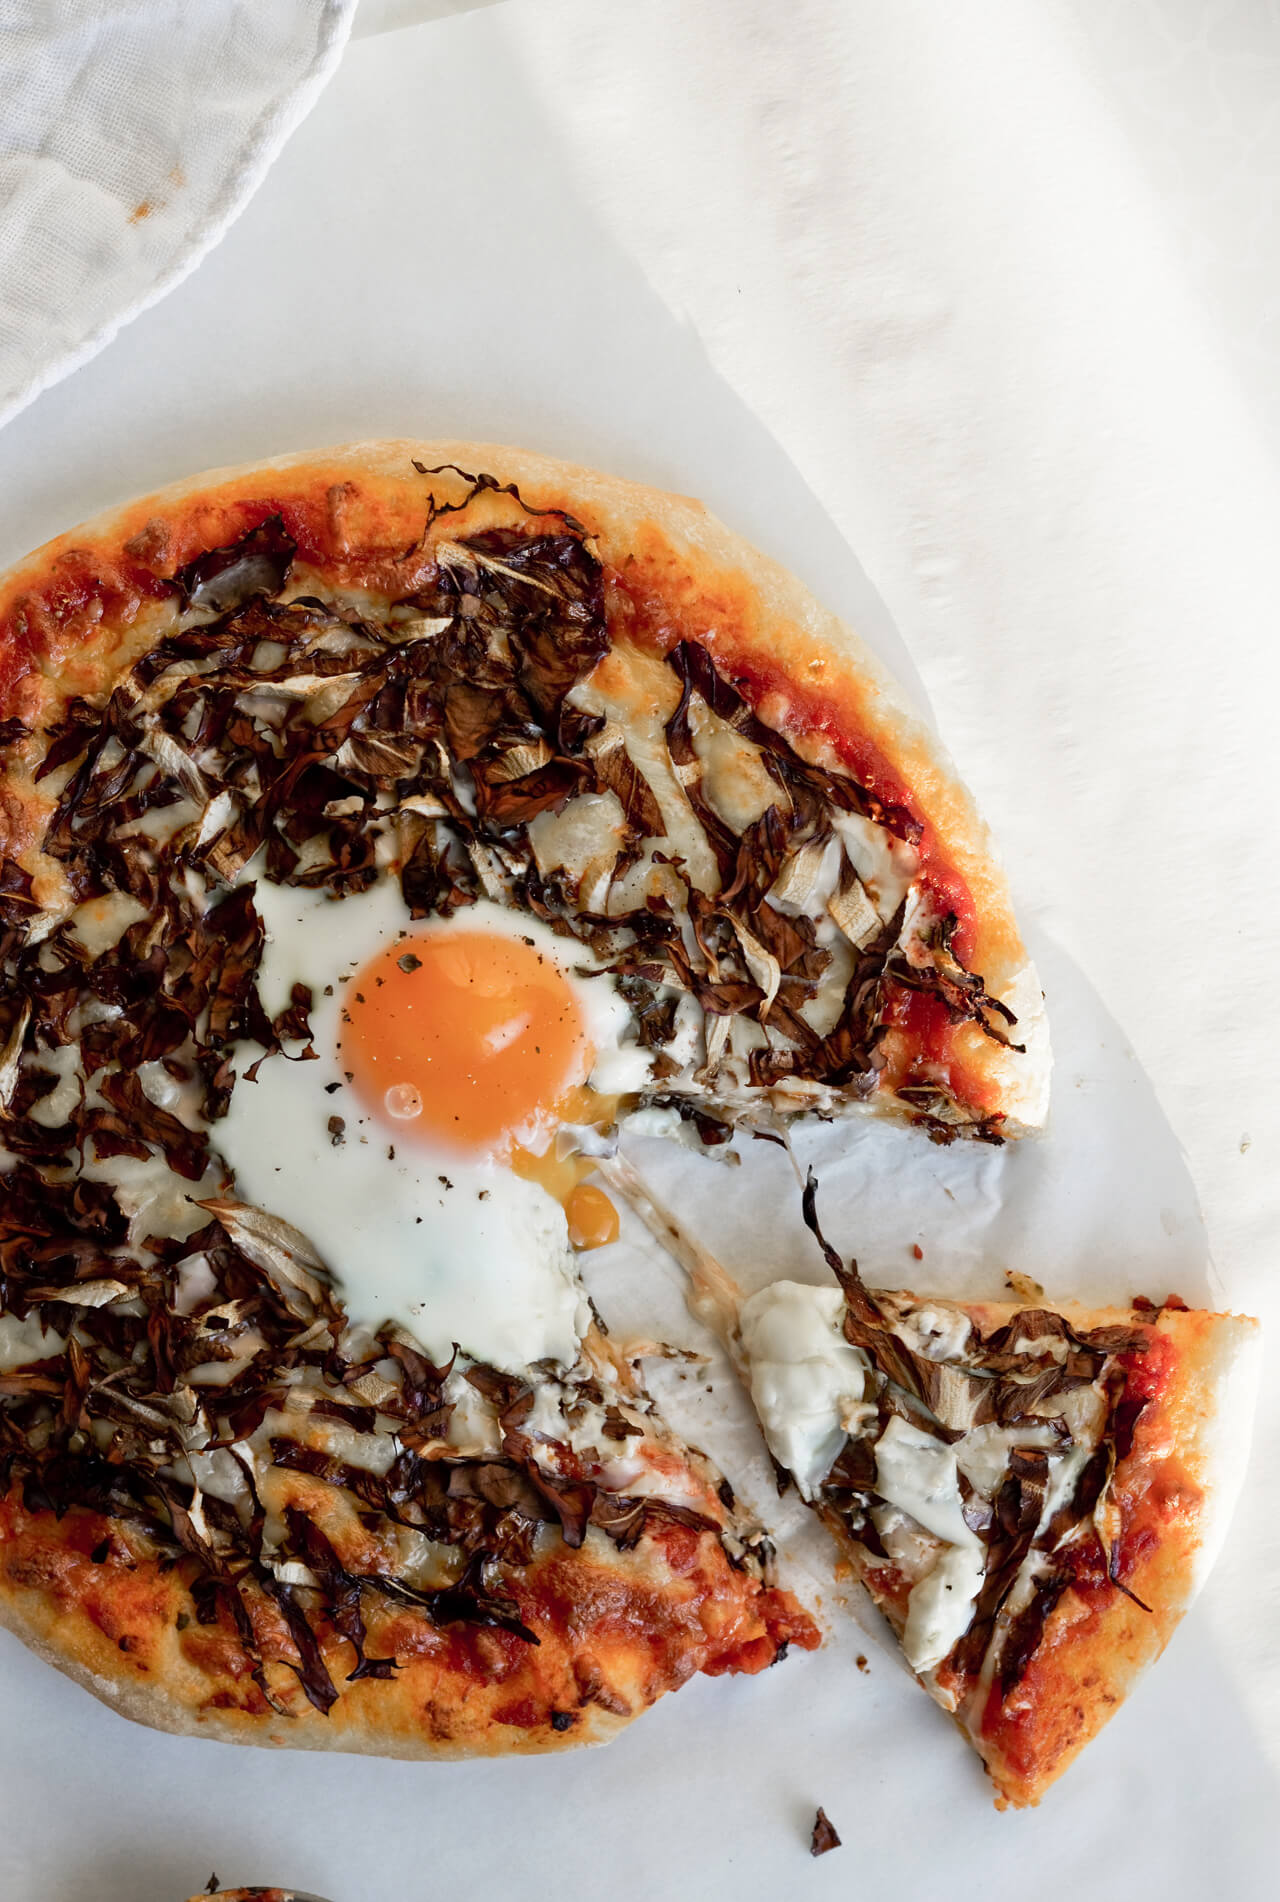 Recipe for simple radicchio pizza with egg on top - a tasty way to eat radicchio and to have more veggies with pizza!